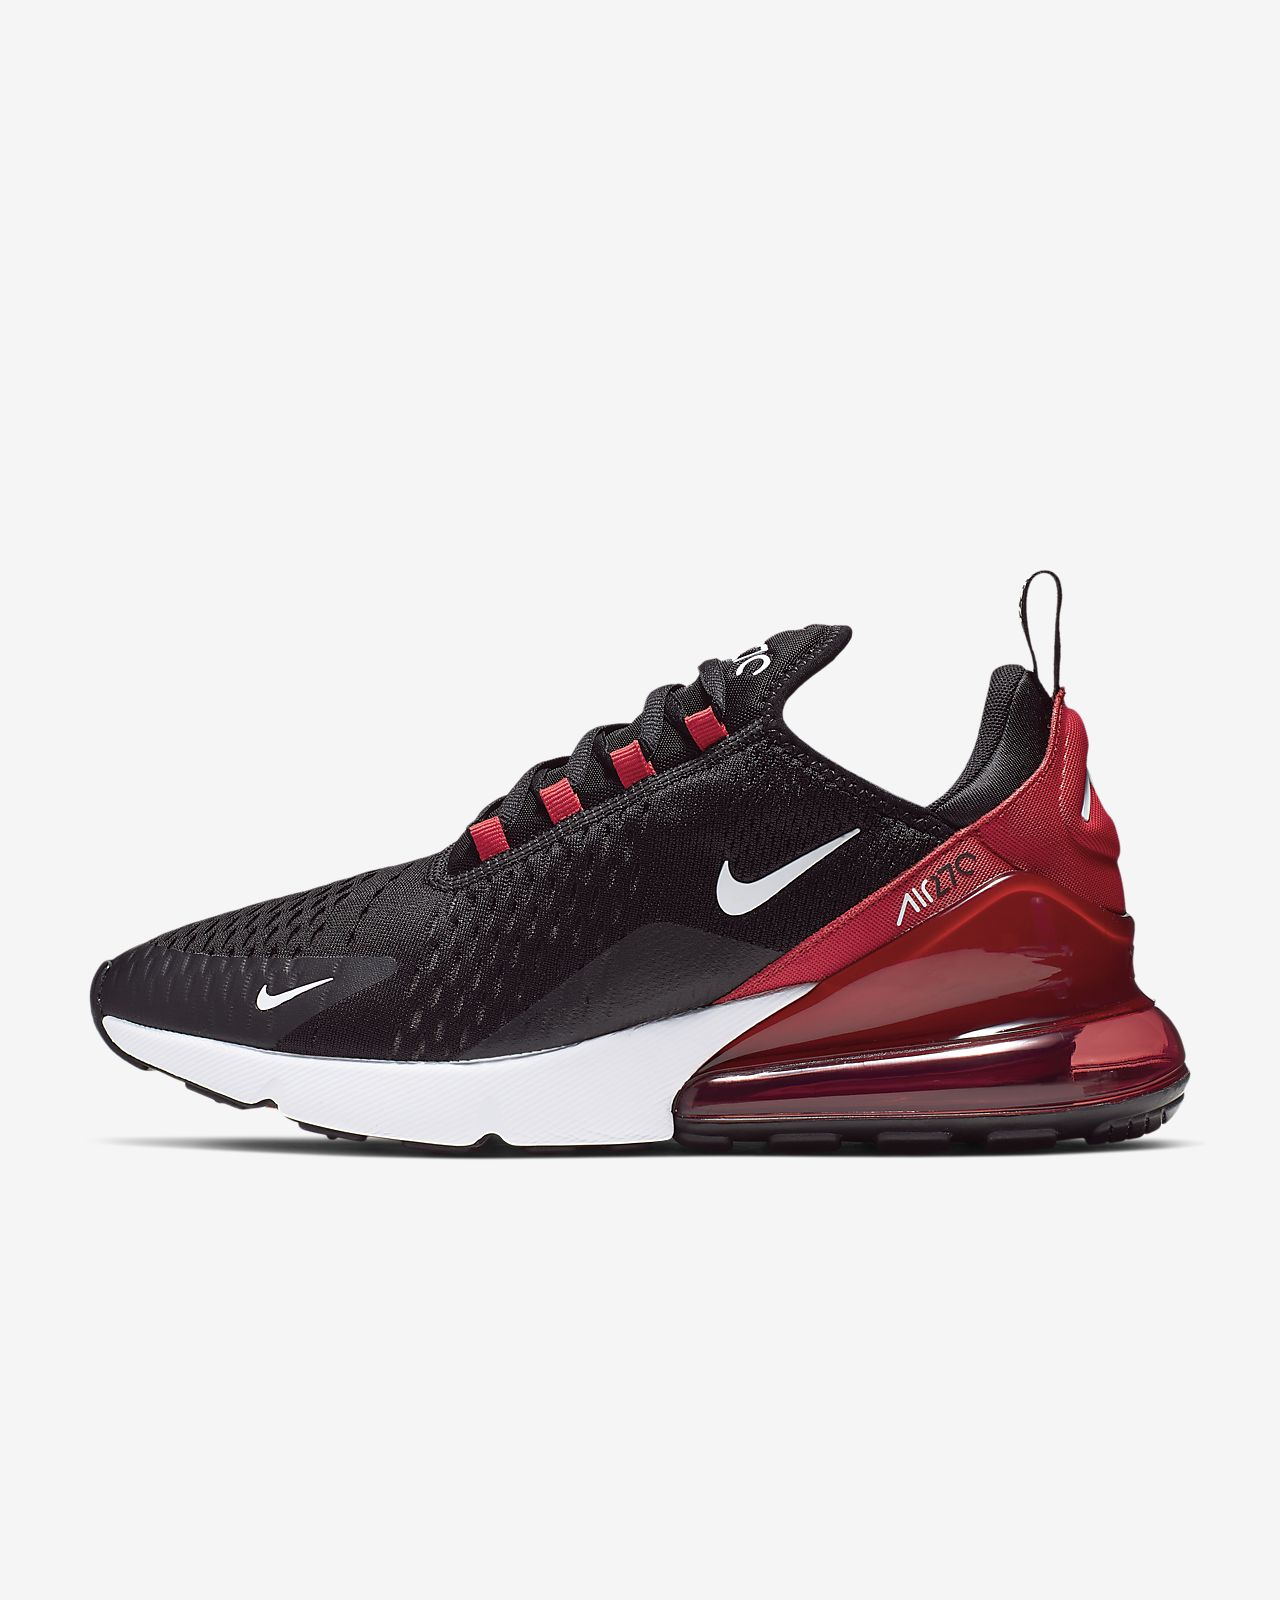 948c56536fa Nike Air Max 270 Men s Shoe. Nike.com GB